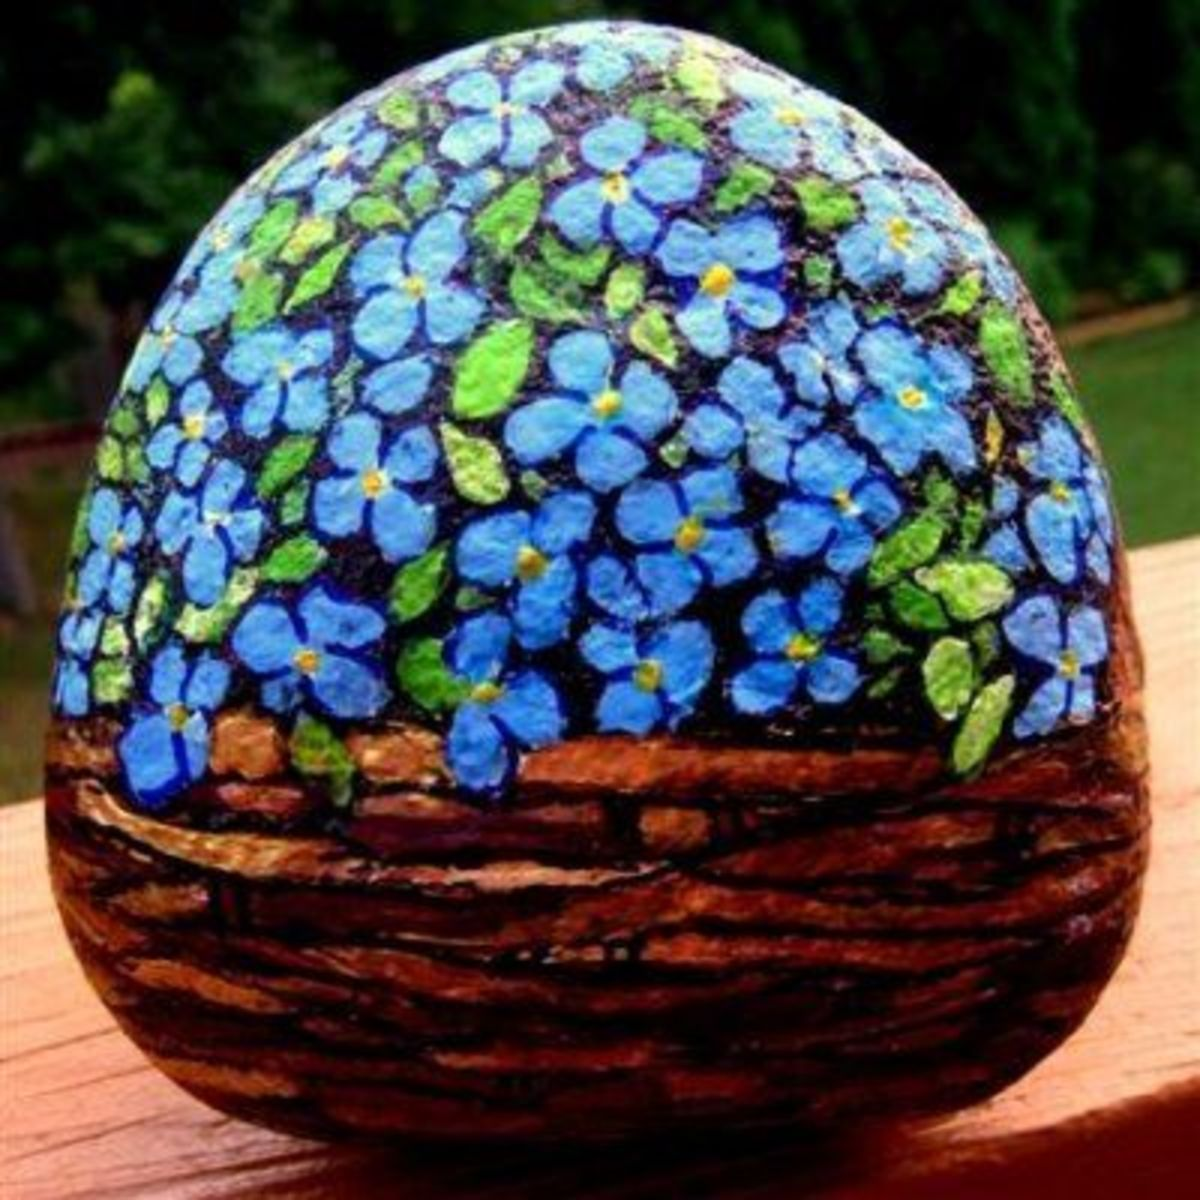 Hand-Painting Flowers and Fairies on Garden Rocks to Make Beautiful Gifts